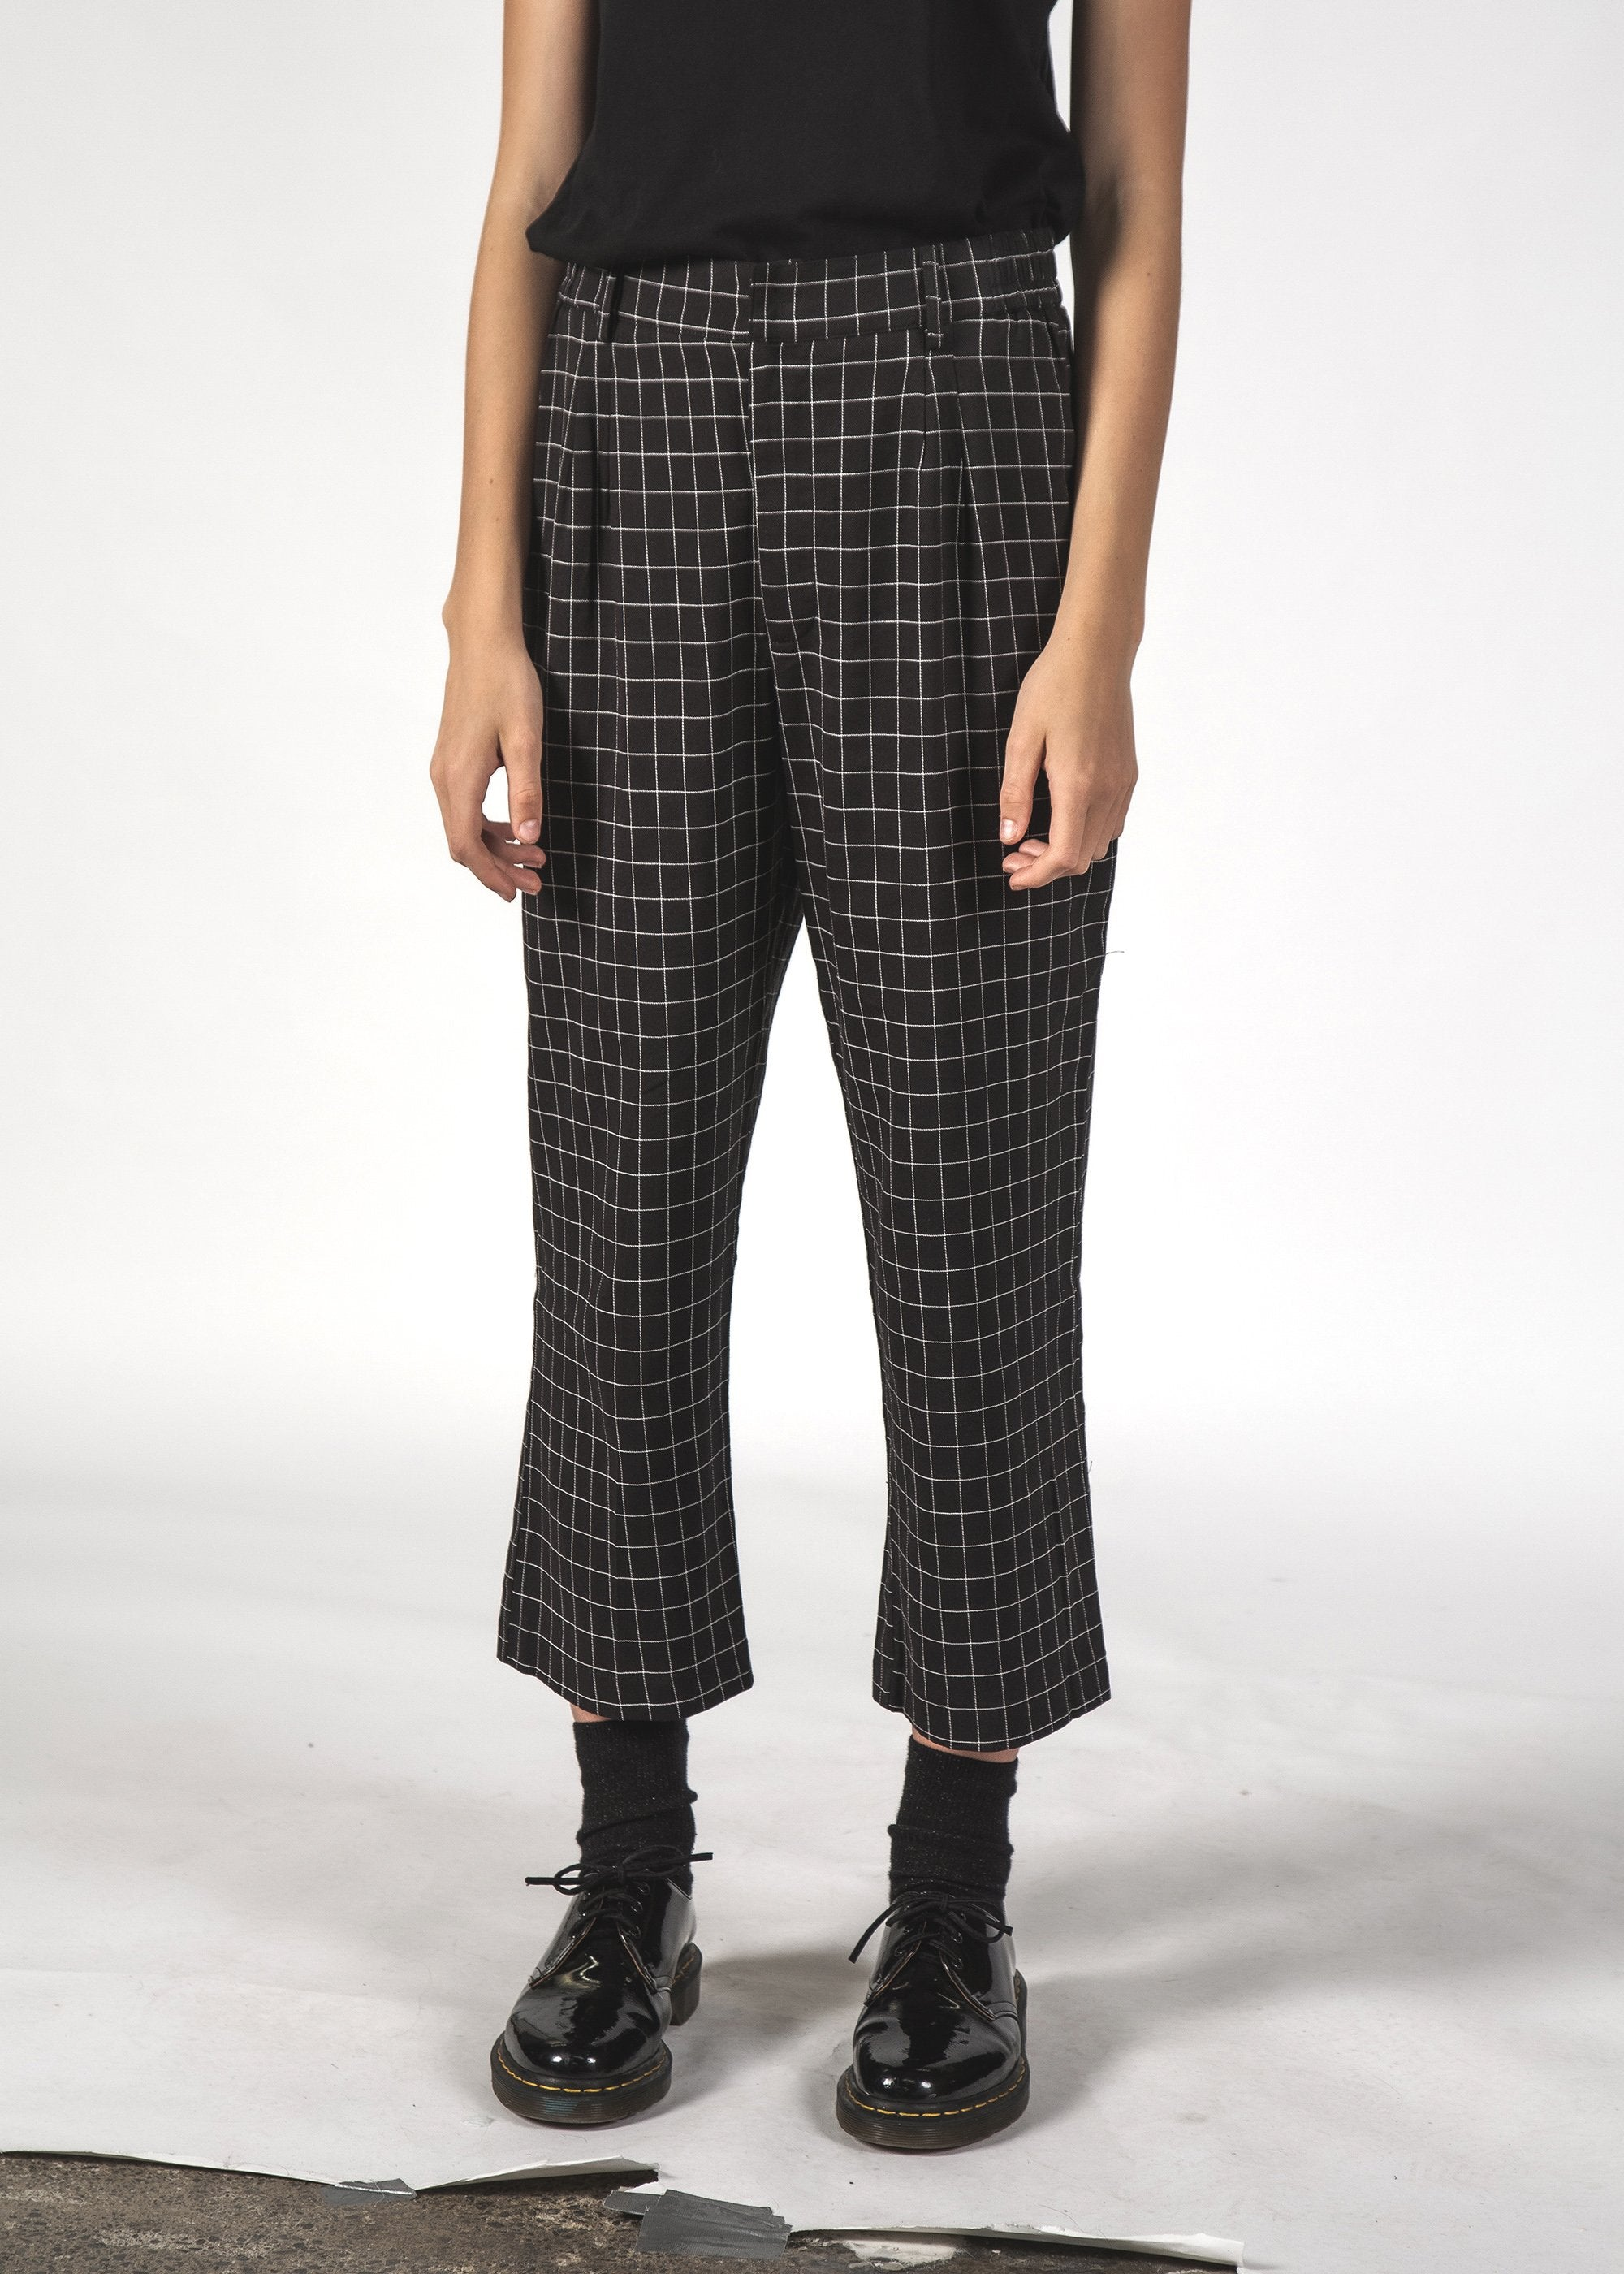 VINCENT PANT - Black Grid